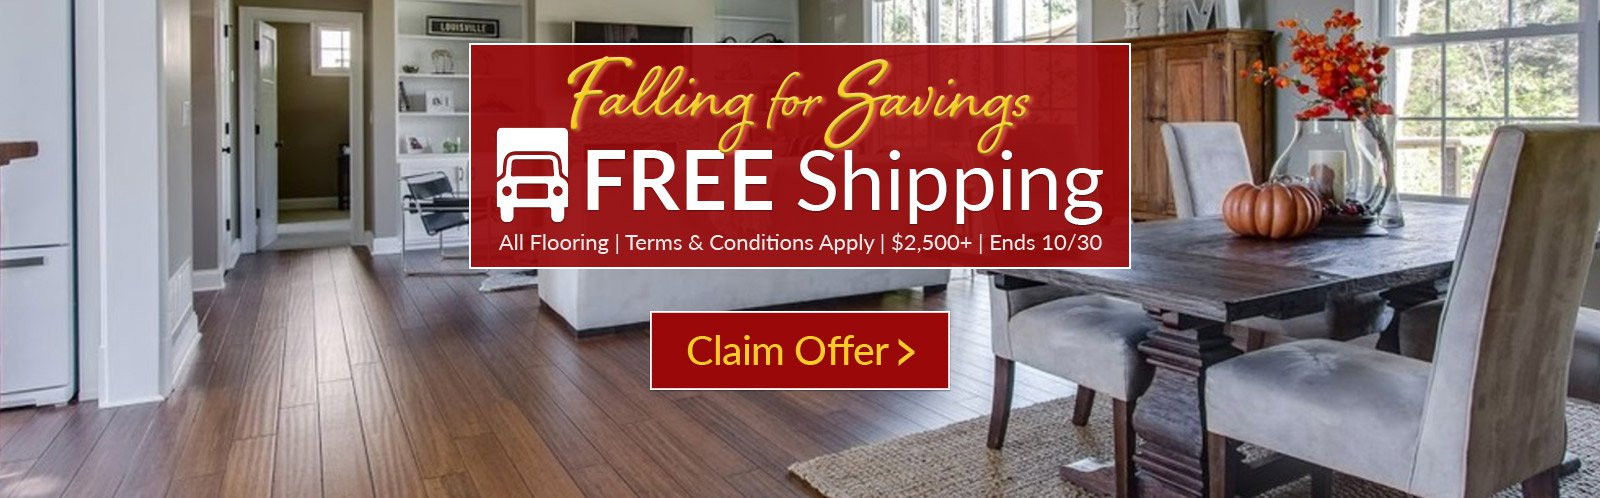 total hardwood flooring oakville of green building construction materials and home decor cali bamboo inside your shopping cart is empty